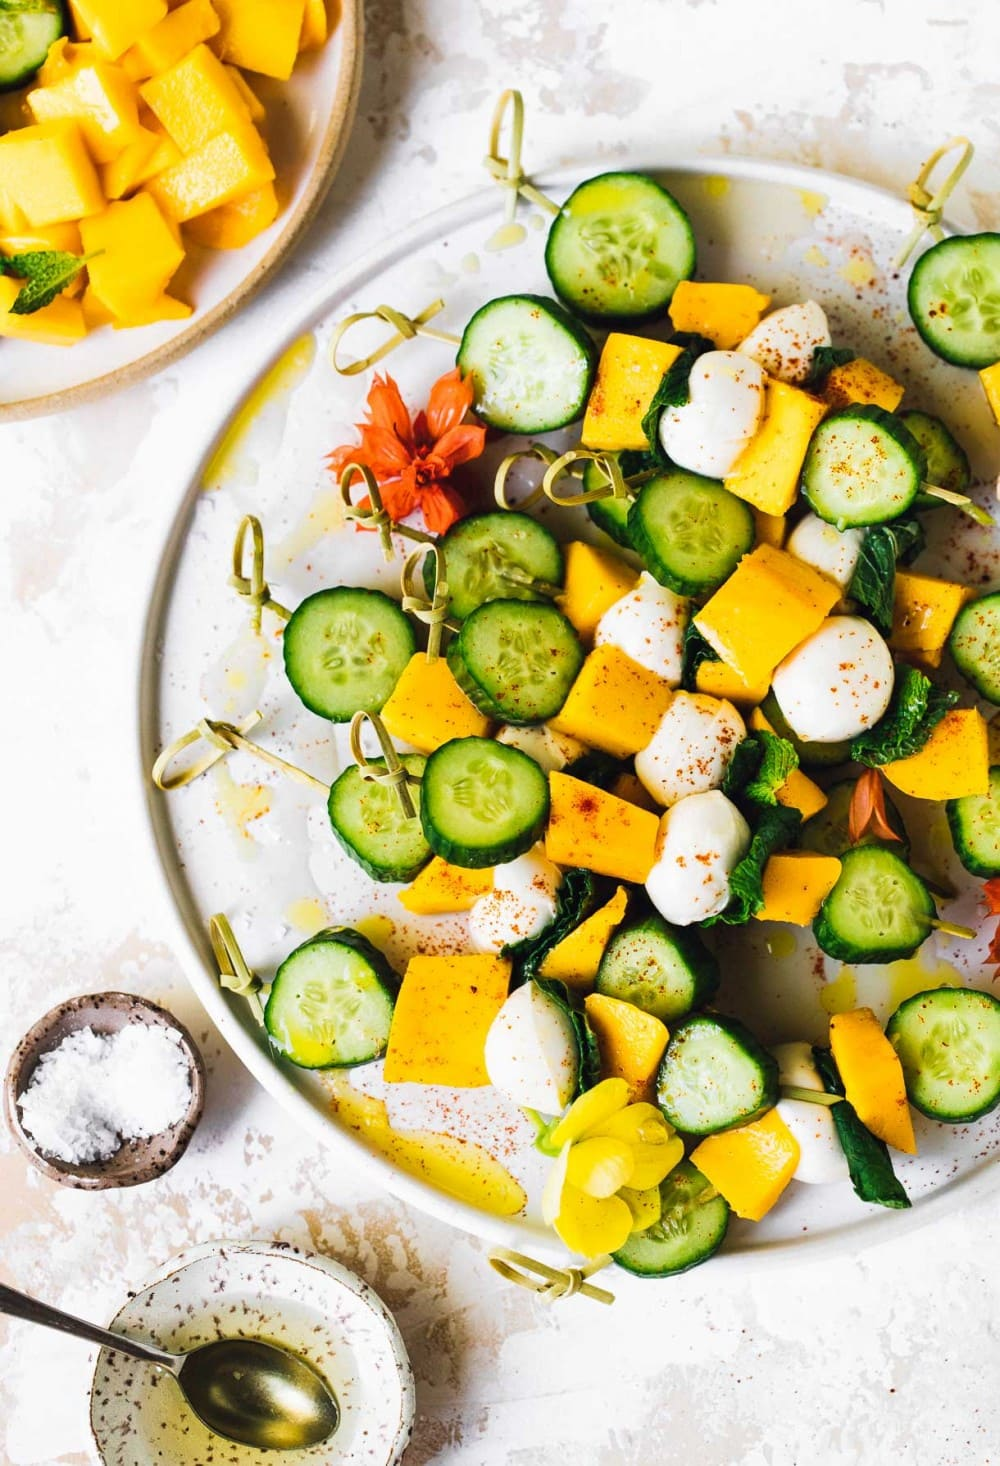 mango mozzarella cucumber skewers on a plate, with bowl of salt and white balsamic vinegar next to it